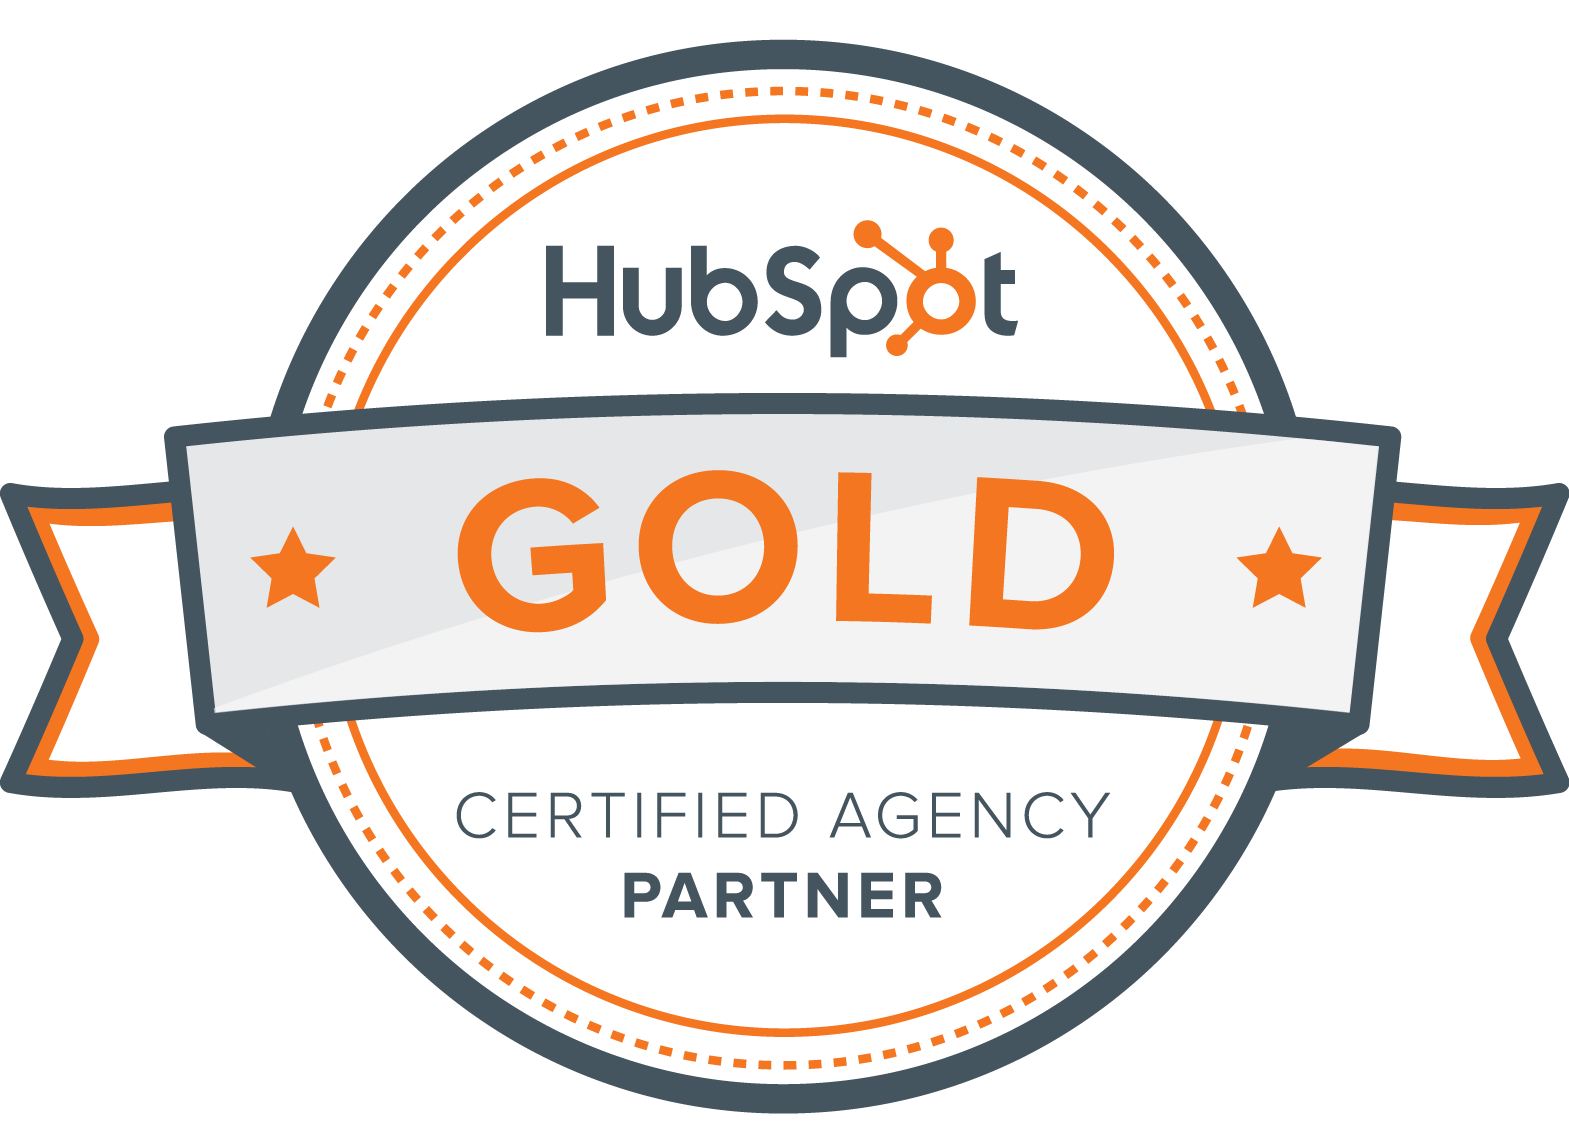 Sneakerlost Gold Partner Hubspot